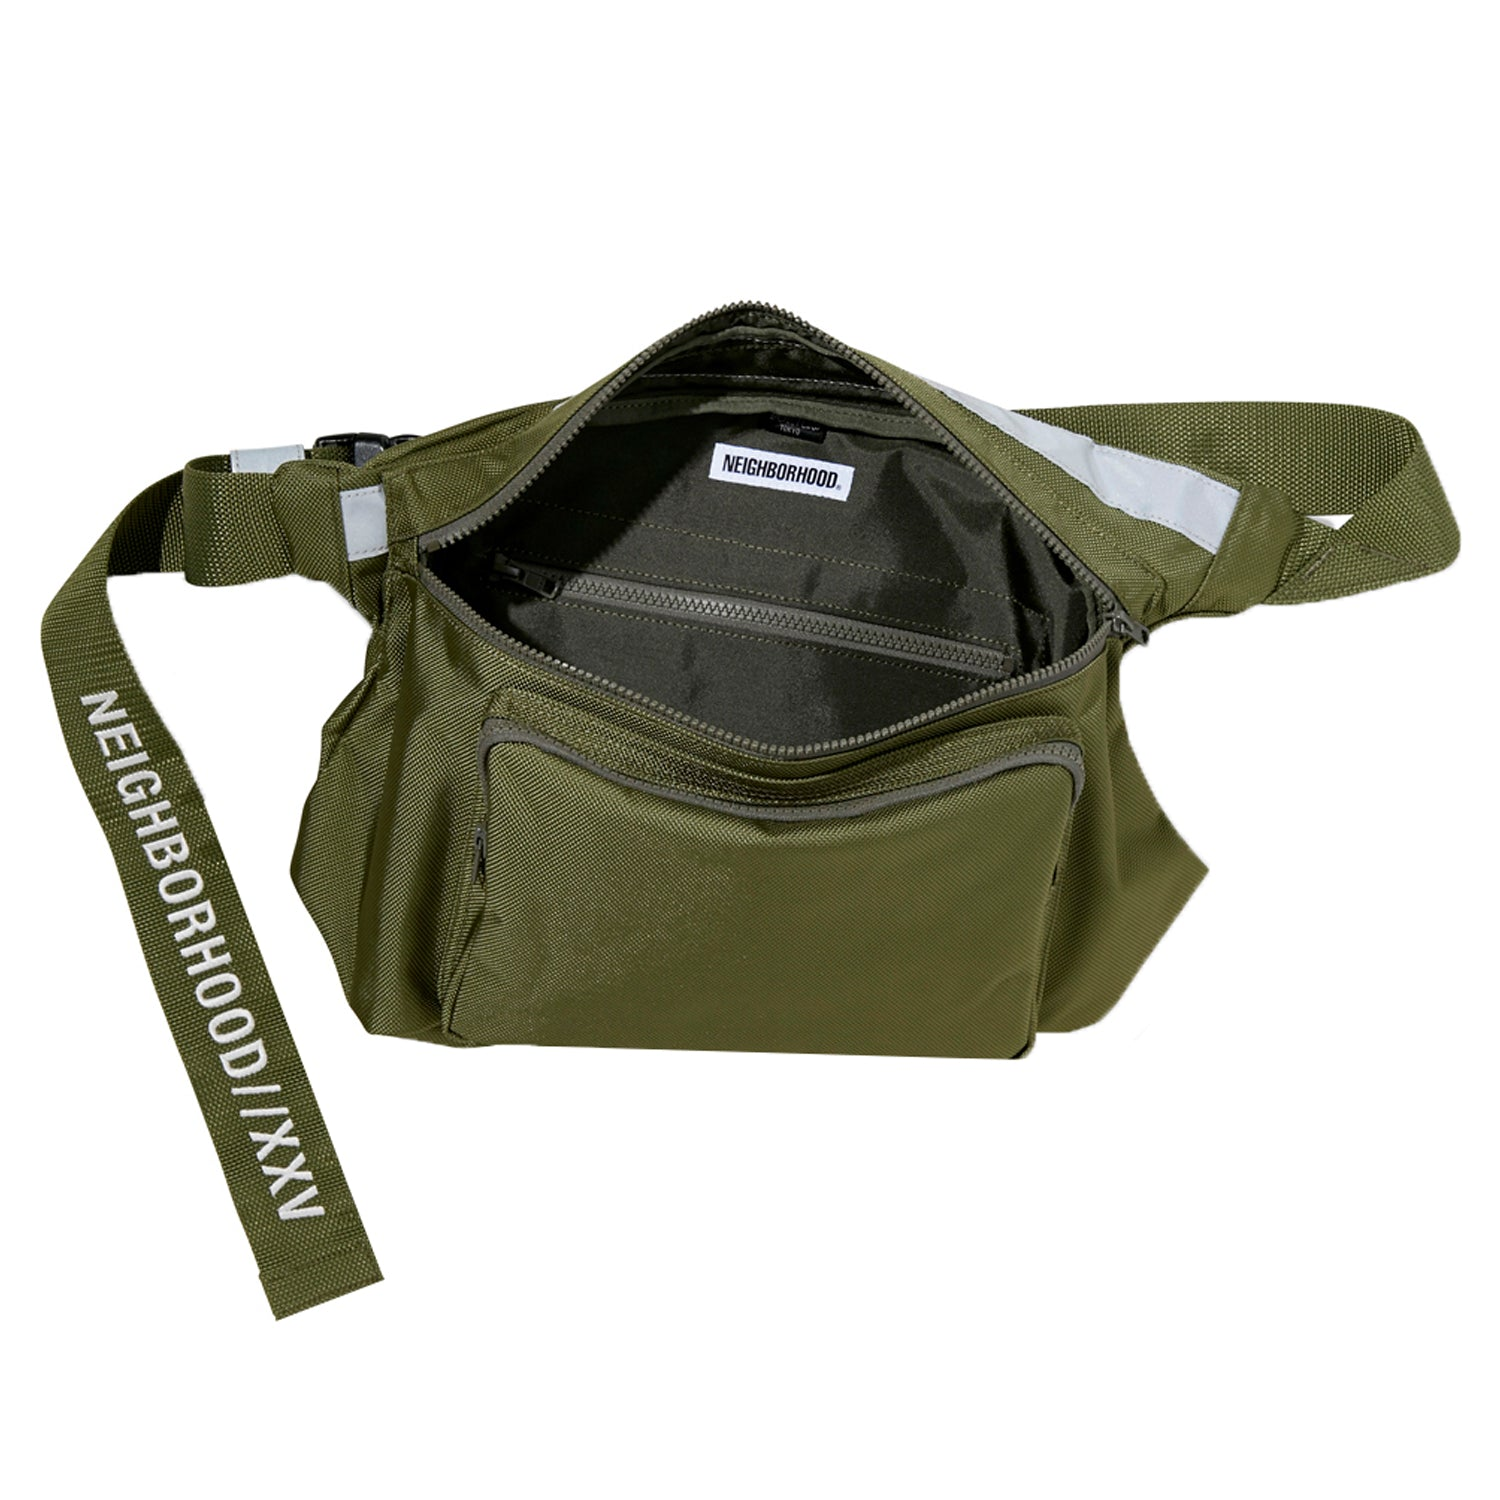 82e4ab4939 Neighborhood x Porter Chest N-Shoulder Bag Olive Drab